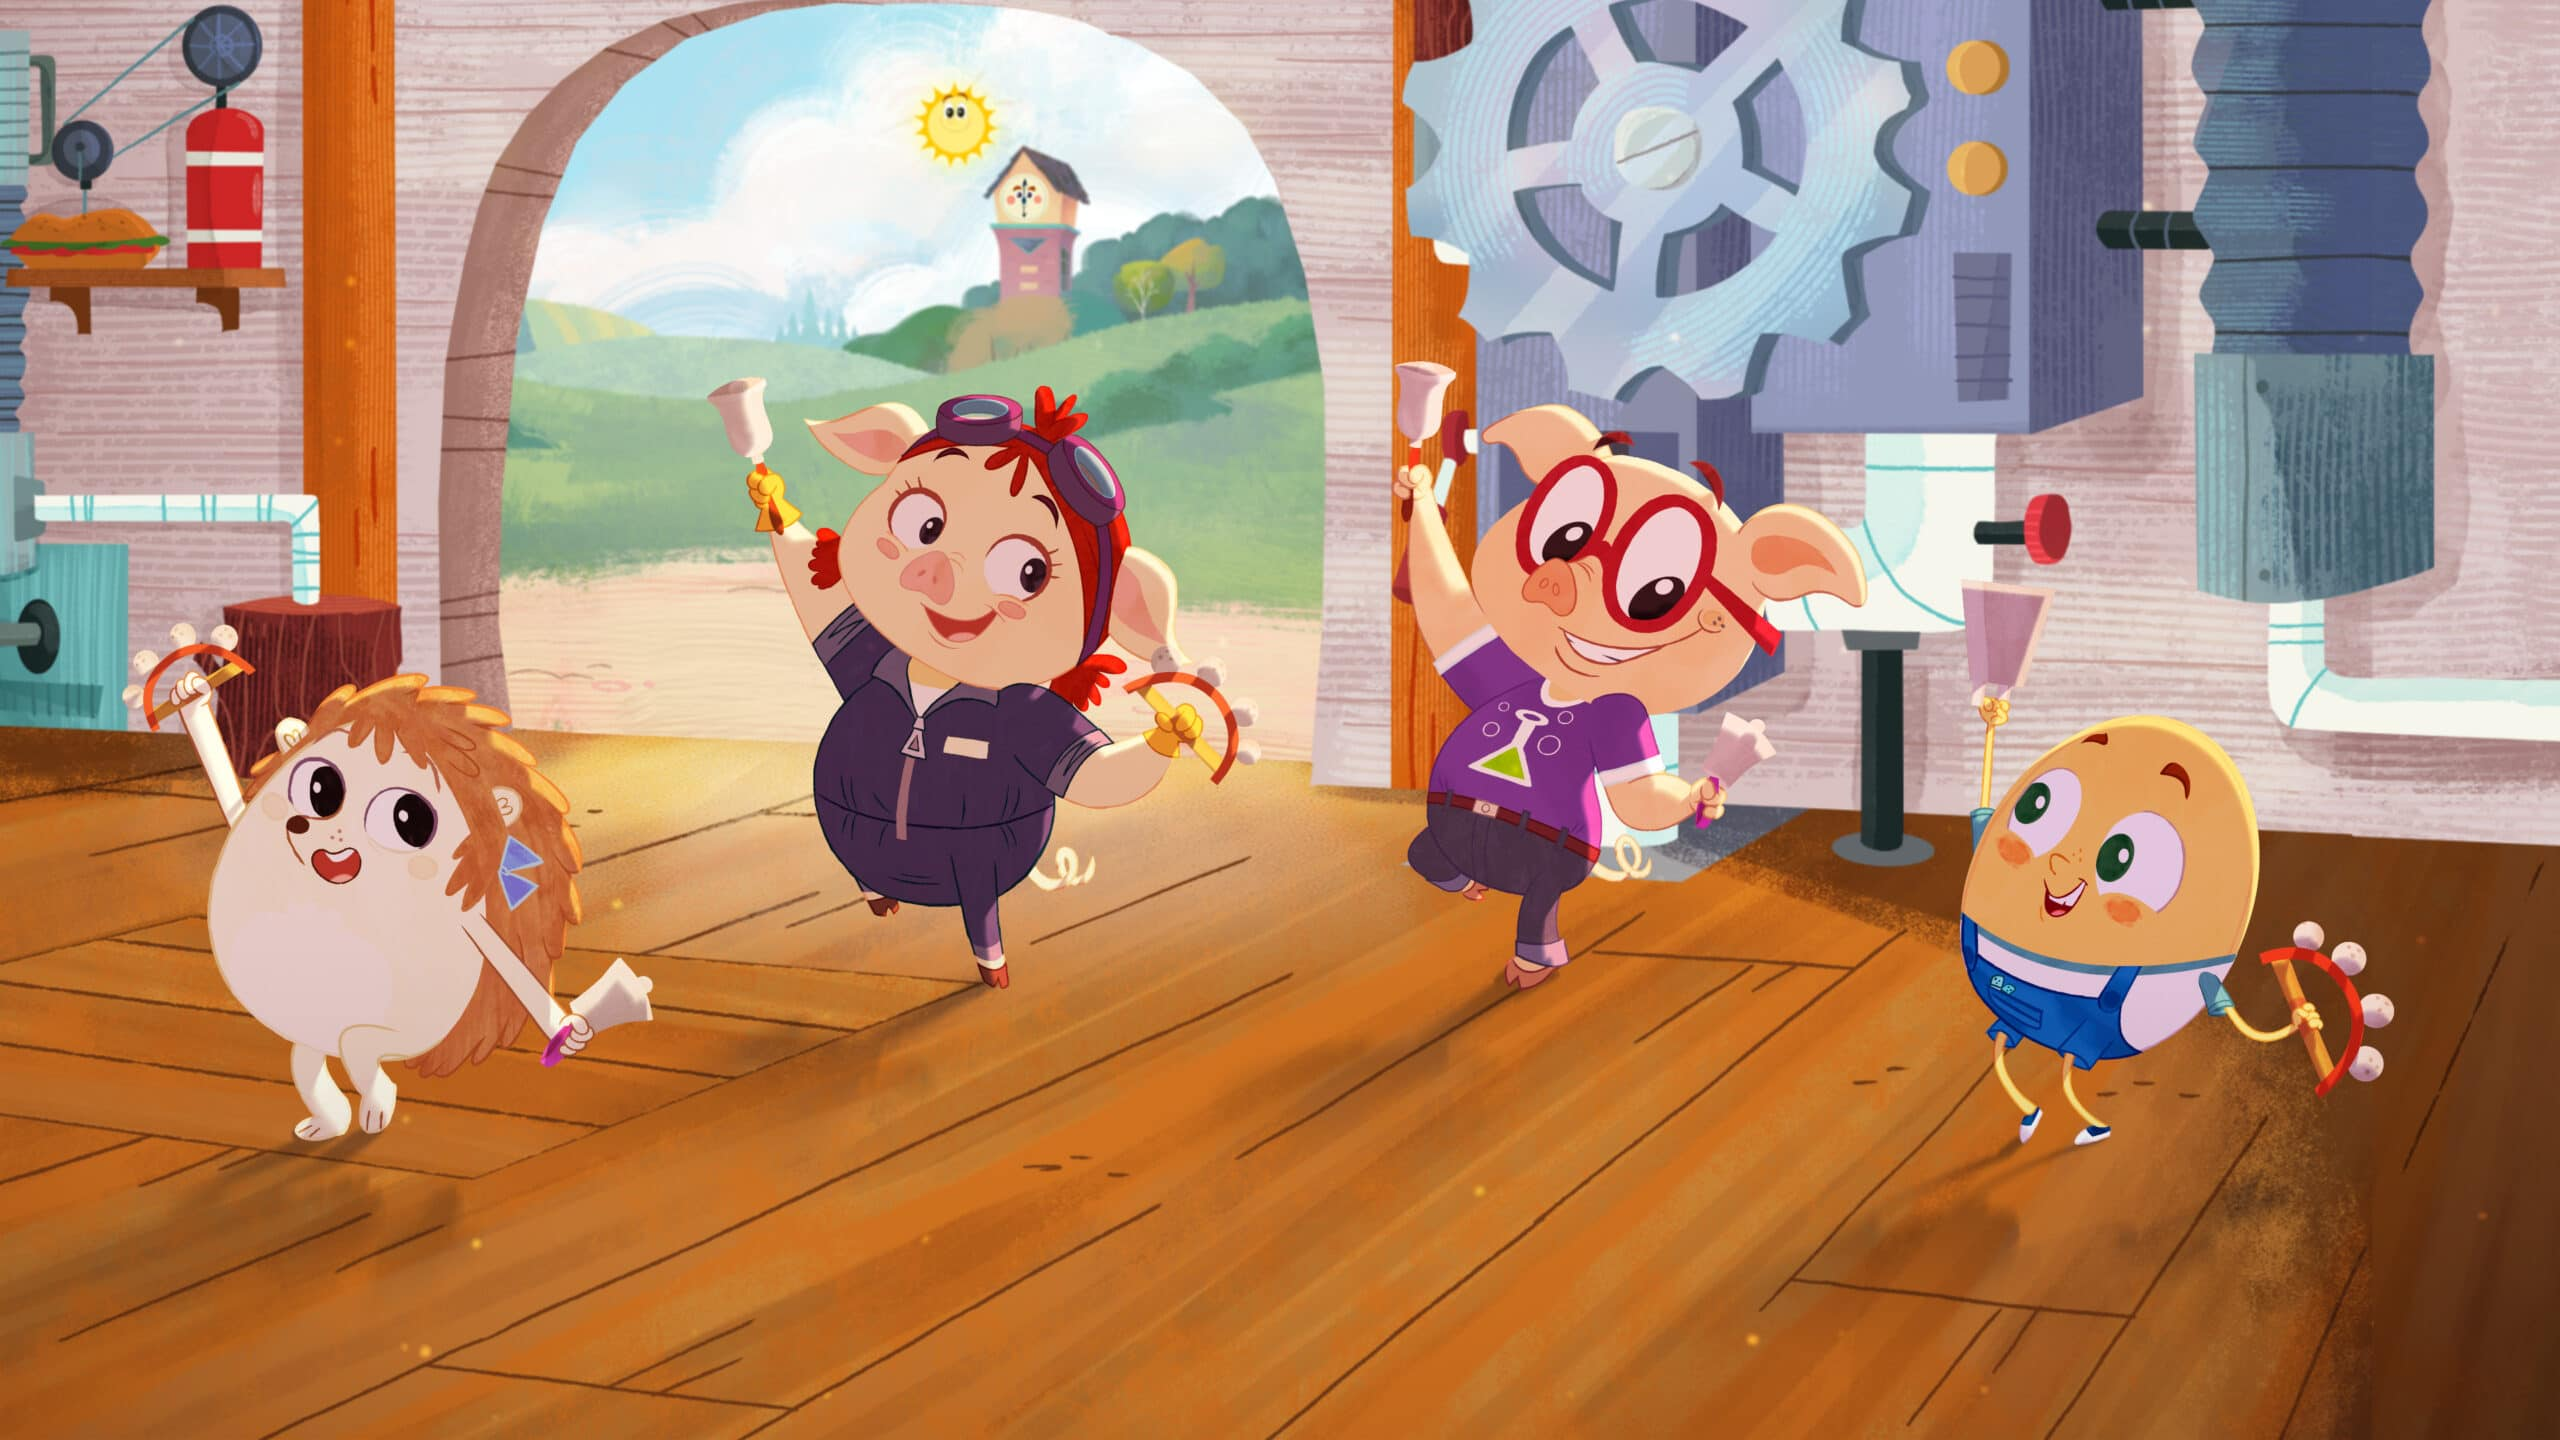 Rhyme Time Town Mary Mary, Jill, Jack, Humpty. Discover more about your favorite characters from the colorful world of Rhyme Time Town. Join Daisy and Cole in 10 all-new singing adventures through the Rhyme Time Town Singalong,coming to Netflix on December 22nd!